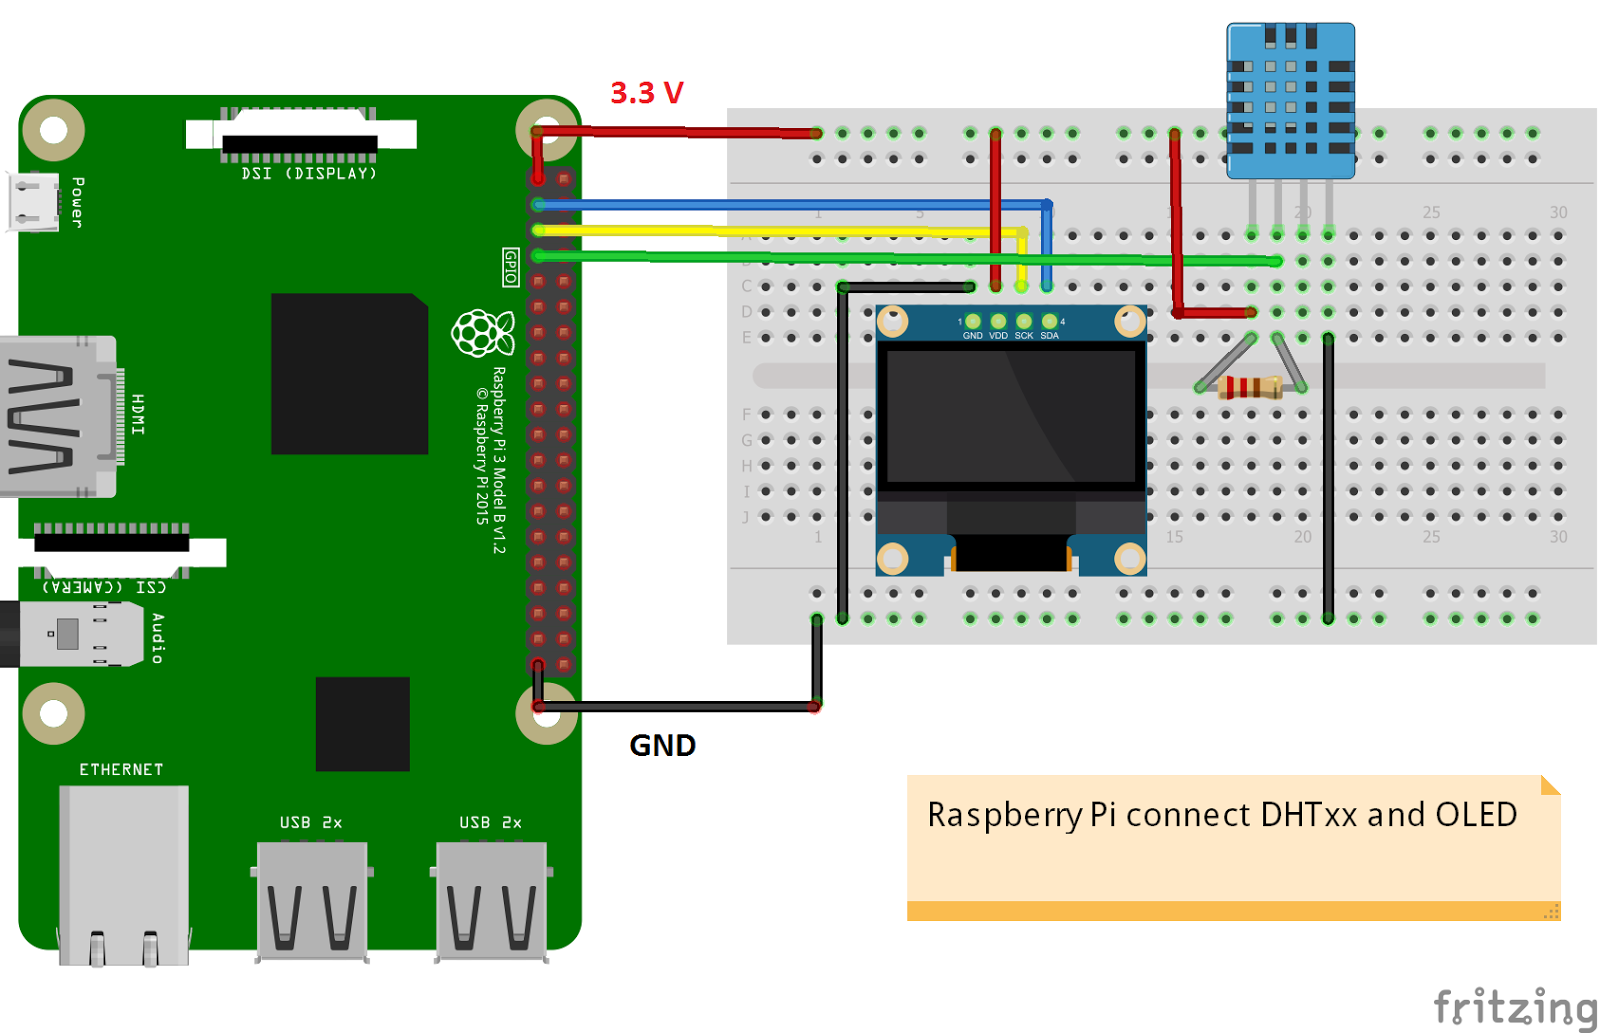 Pleasant Raspberry Pi Projects Raspberry Pi Dht Sensor And Oled In Python Code Wiring Digital Resources Indicompassionincorg